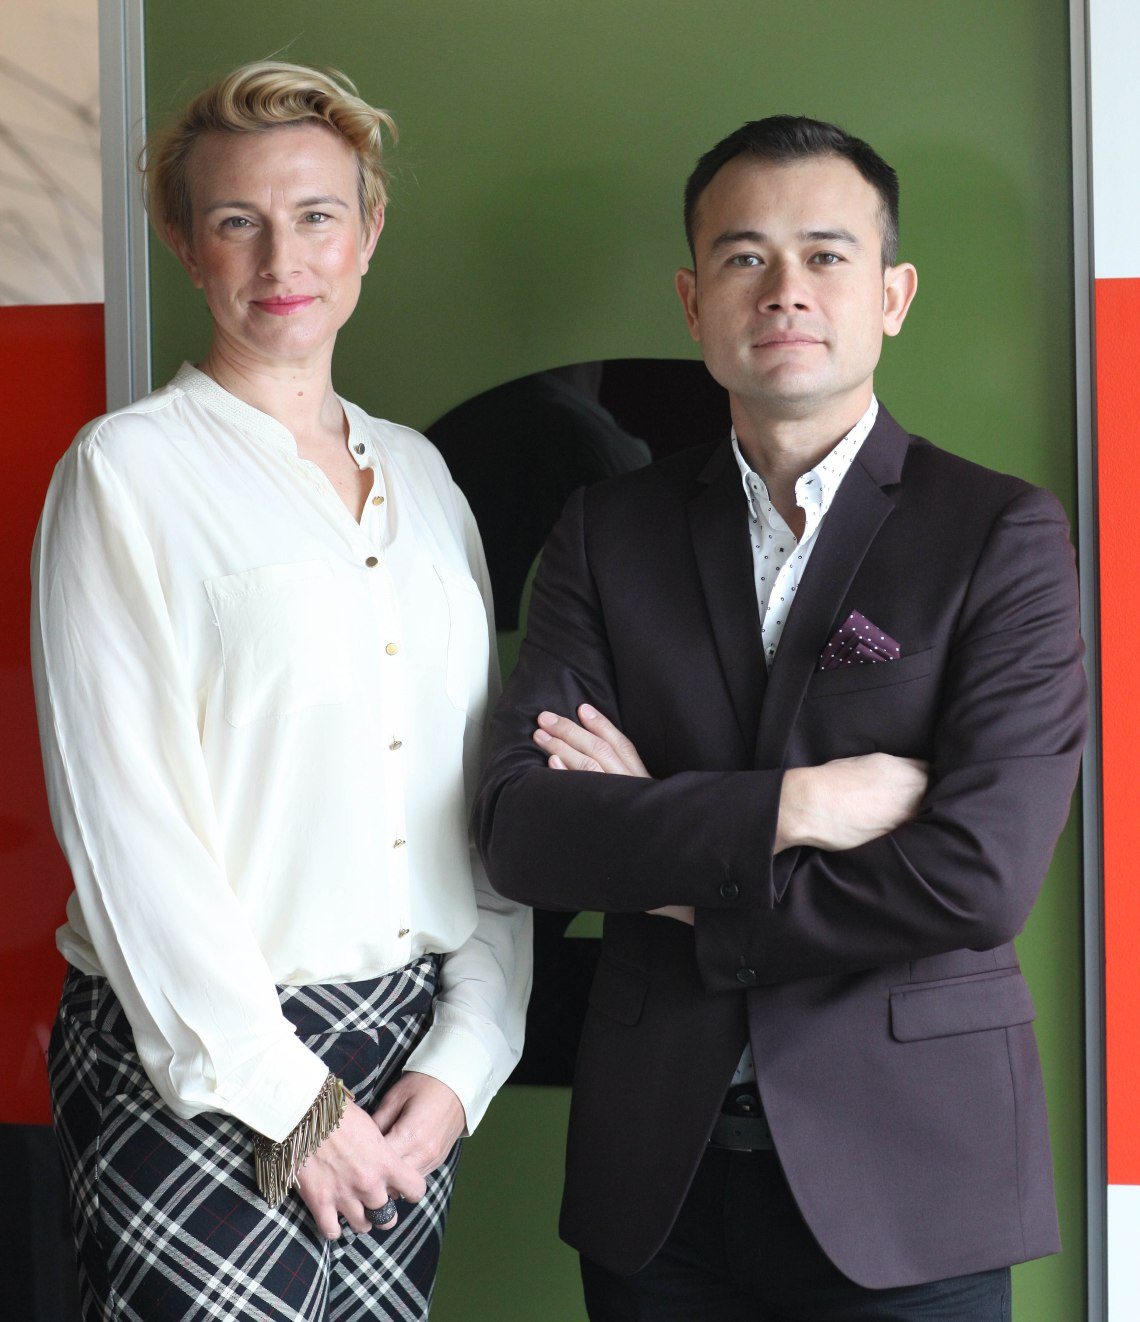 Georgia Hawkins and Brendan Wong. Interior Design